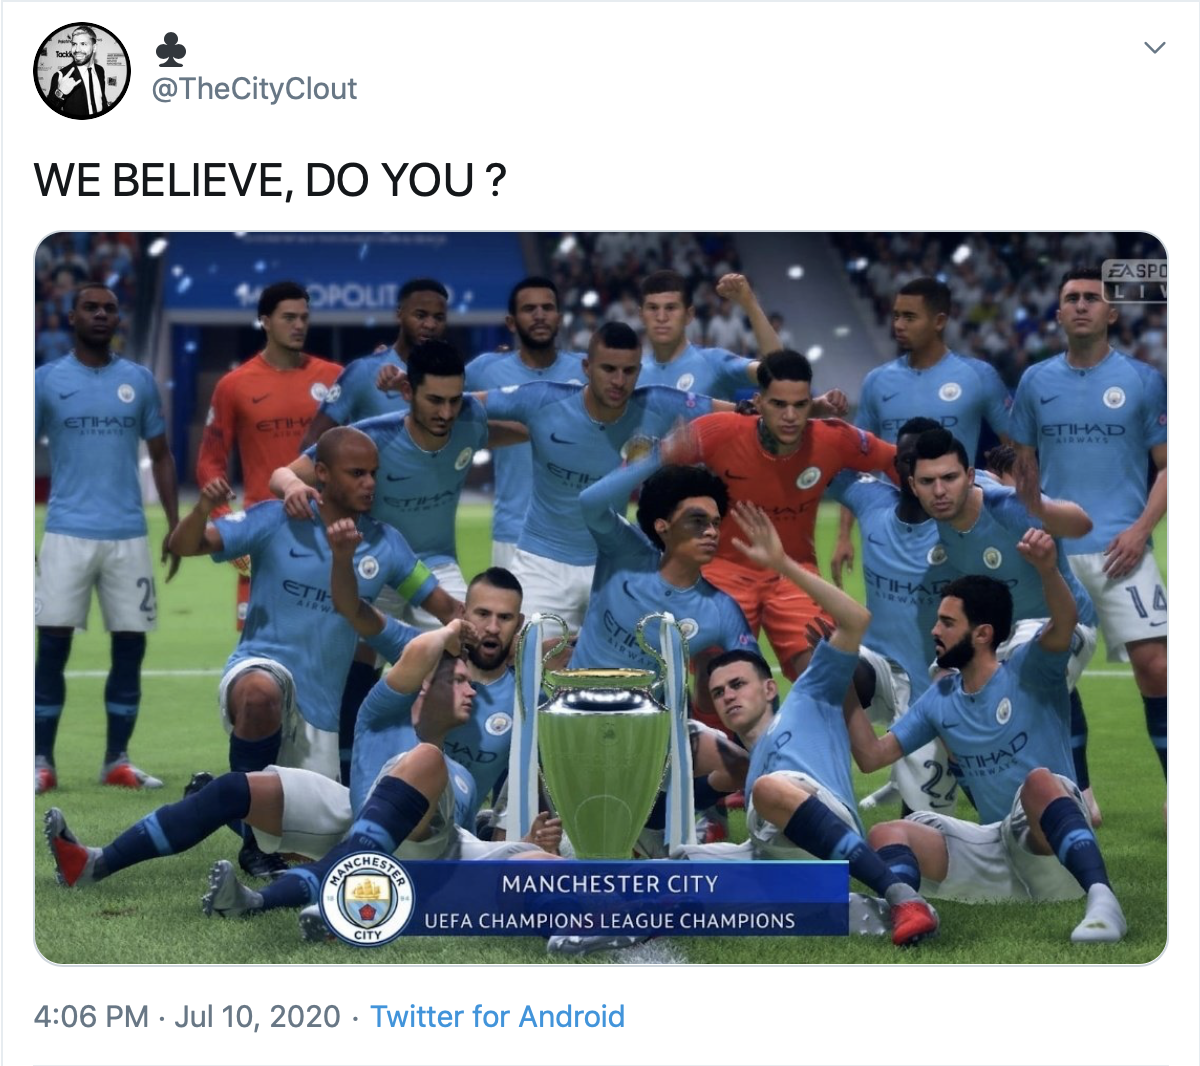 When you have to use an image from FIFA because there is no real image of you with UCL trophy. https://t.co/dV65Pca4TH